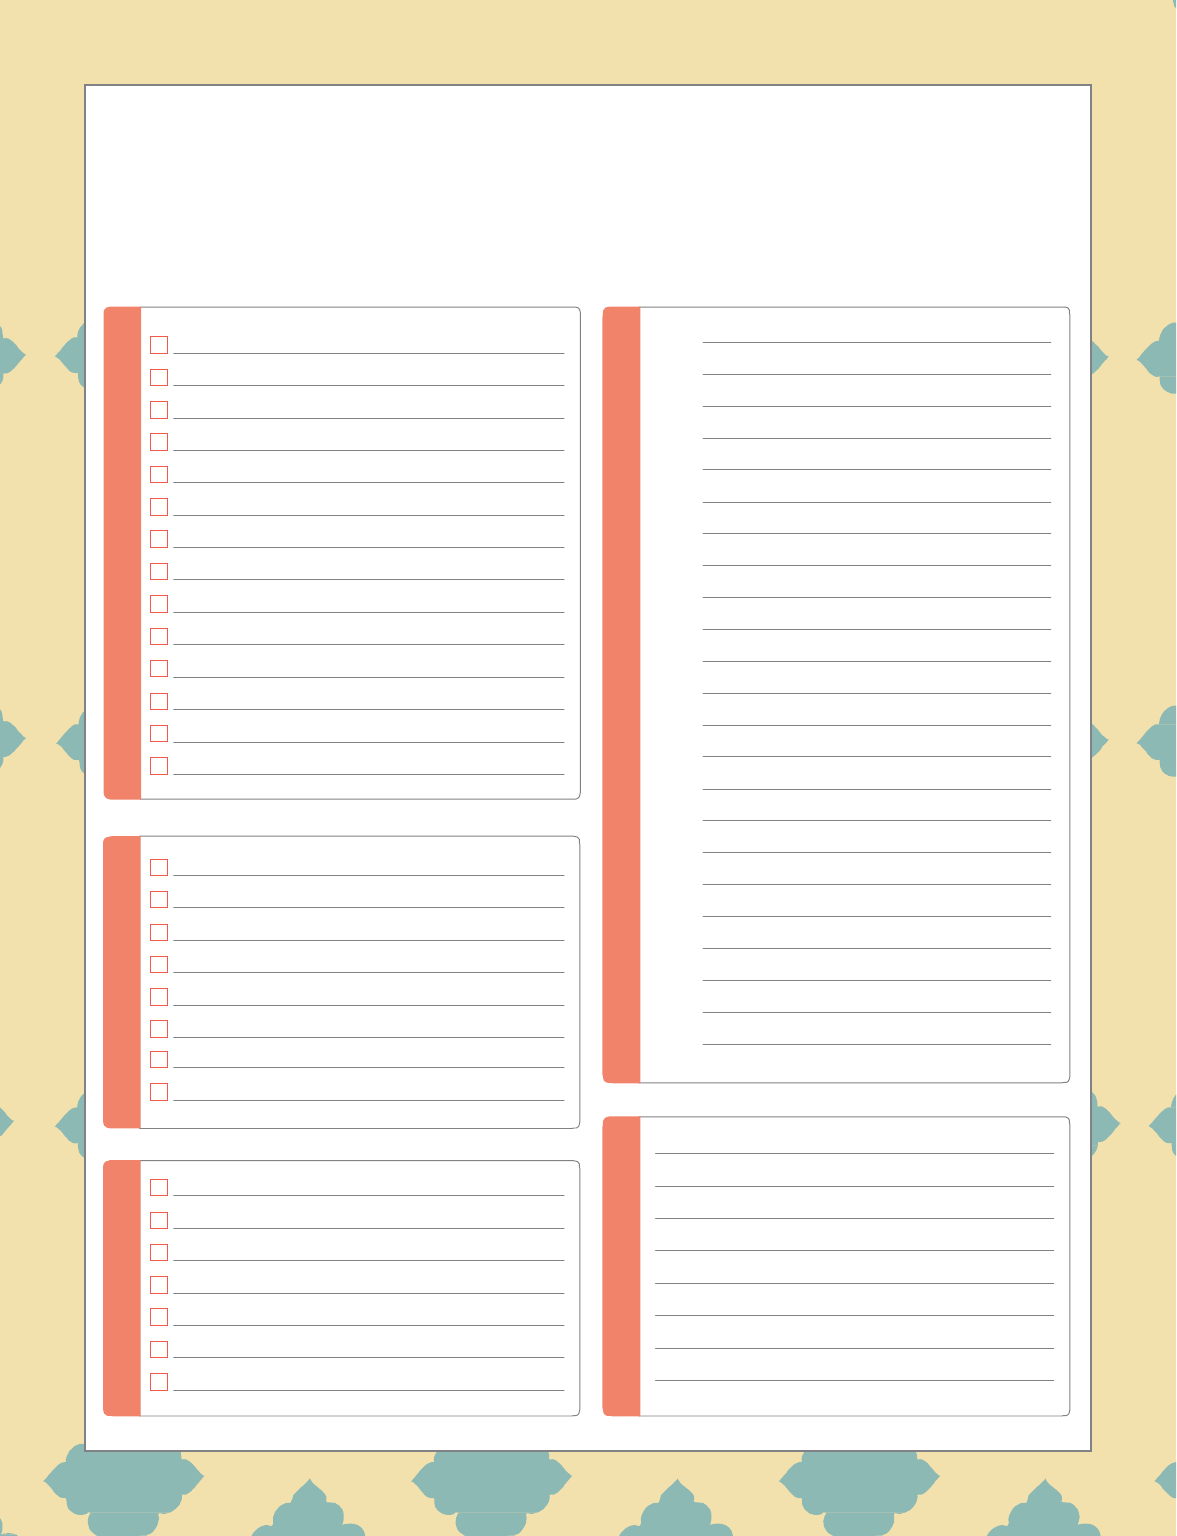 graphic regarding Blank Daily Schedule titled Down load Pattern Simplest Blank Every day Plan Planner for Totally free